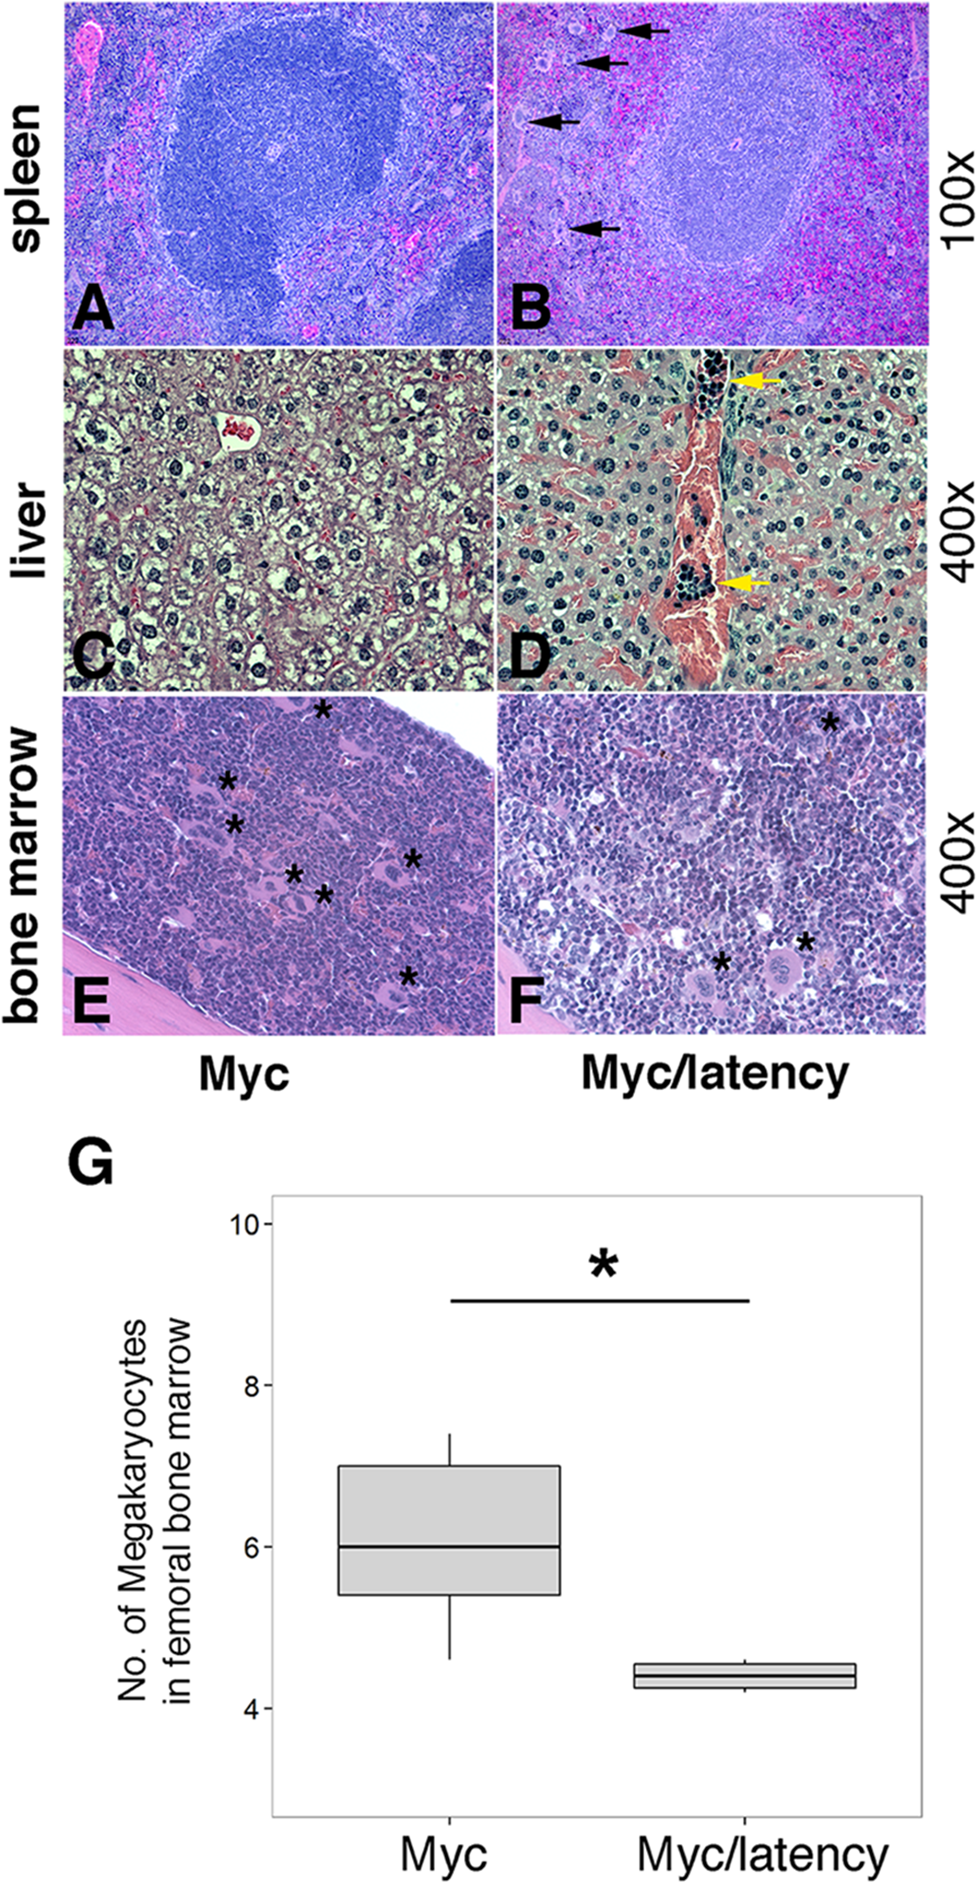 Severe EMH in the Myc/latency mice.